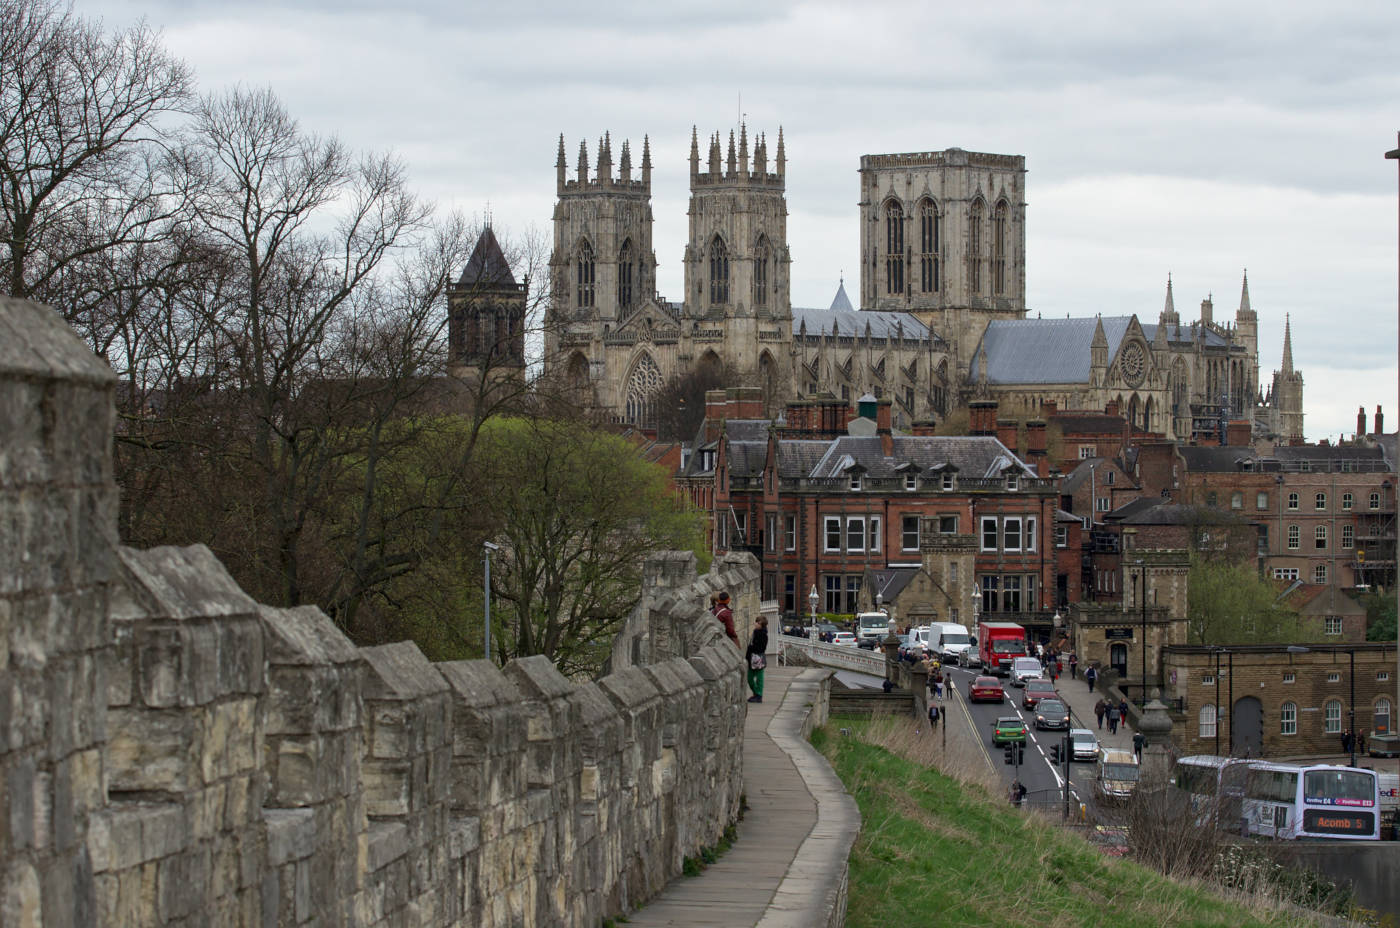 York Walls and the Minster